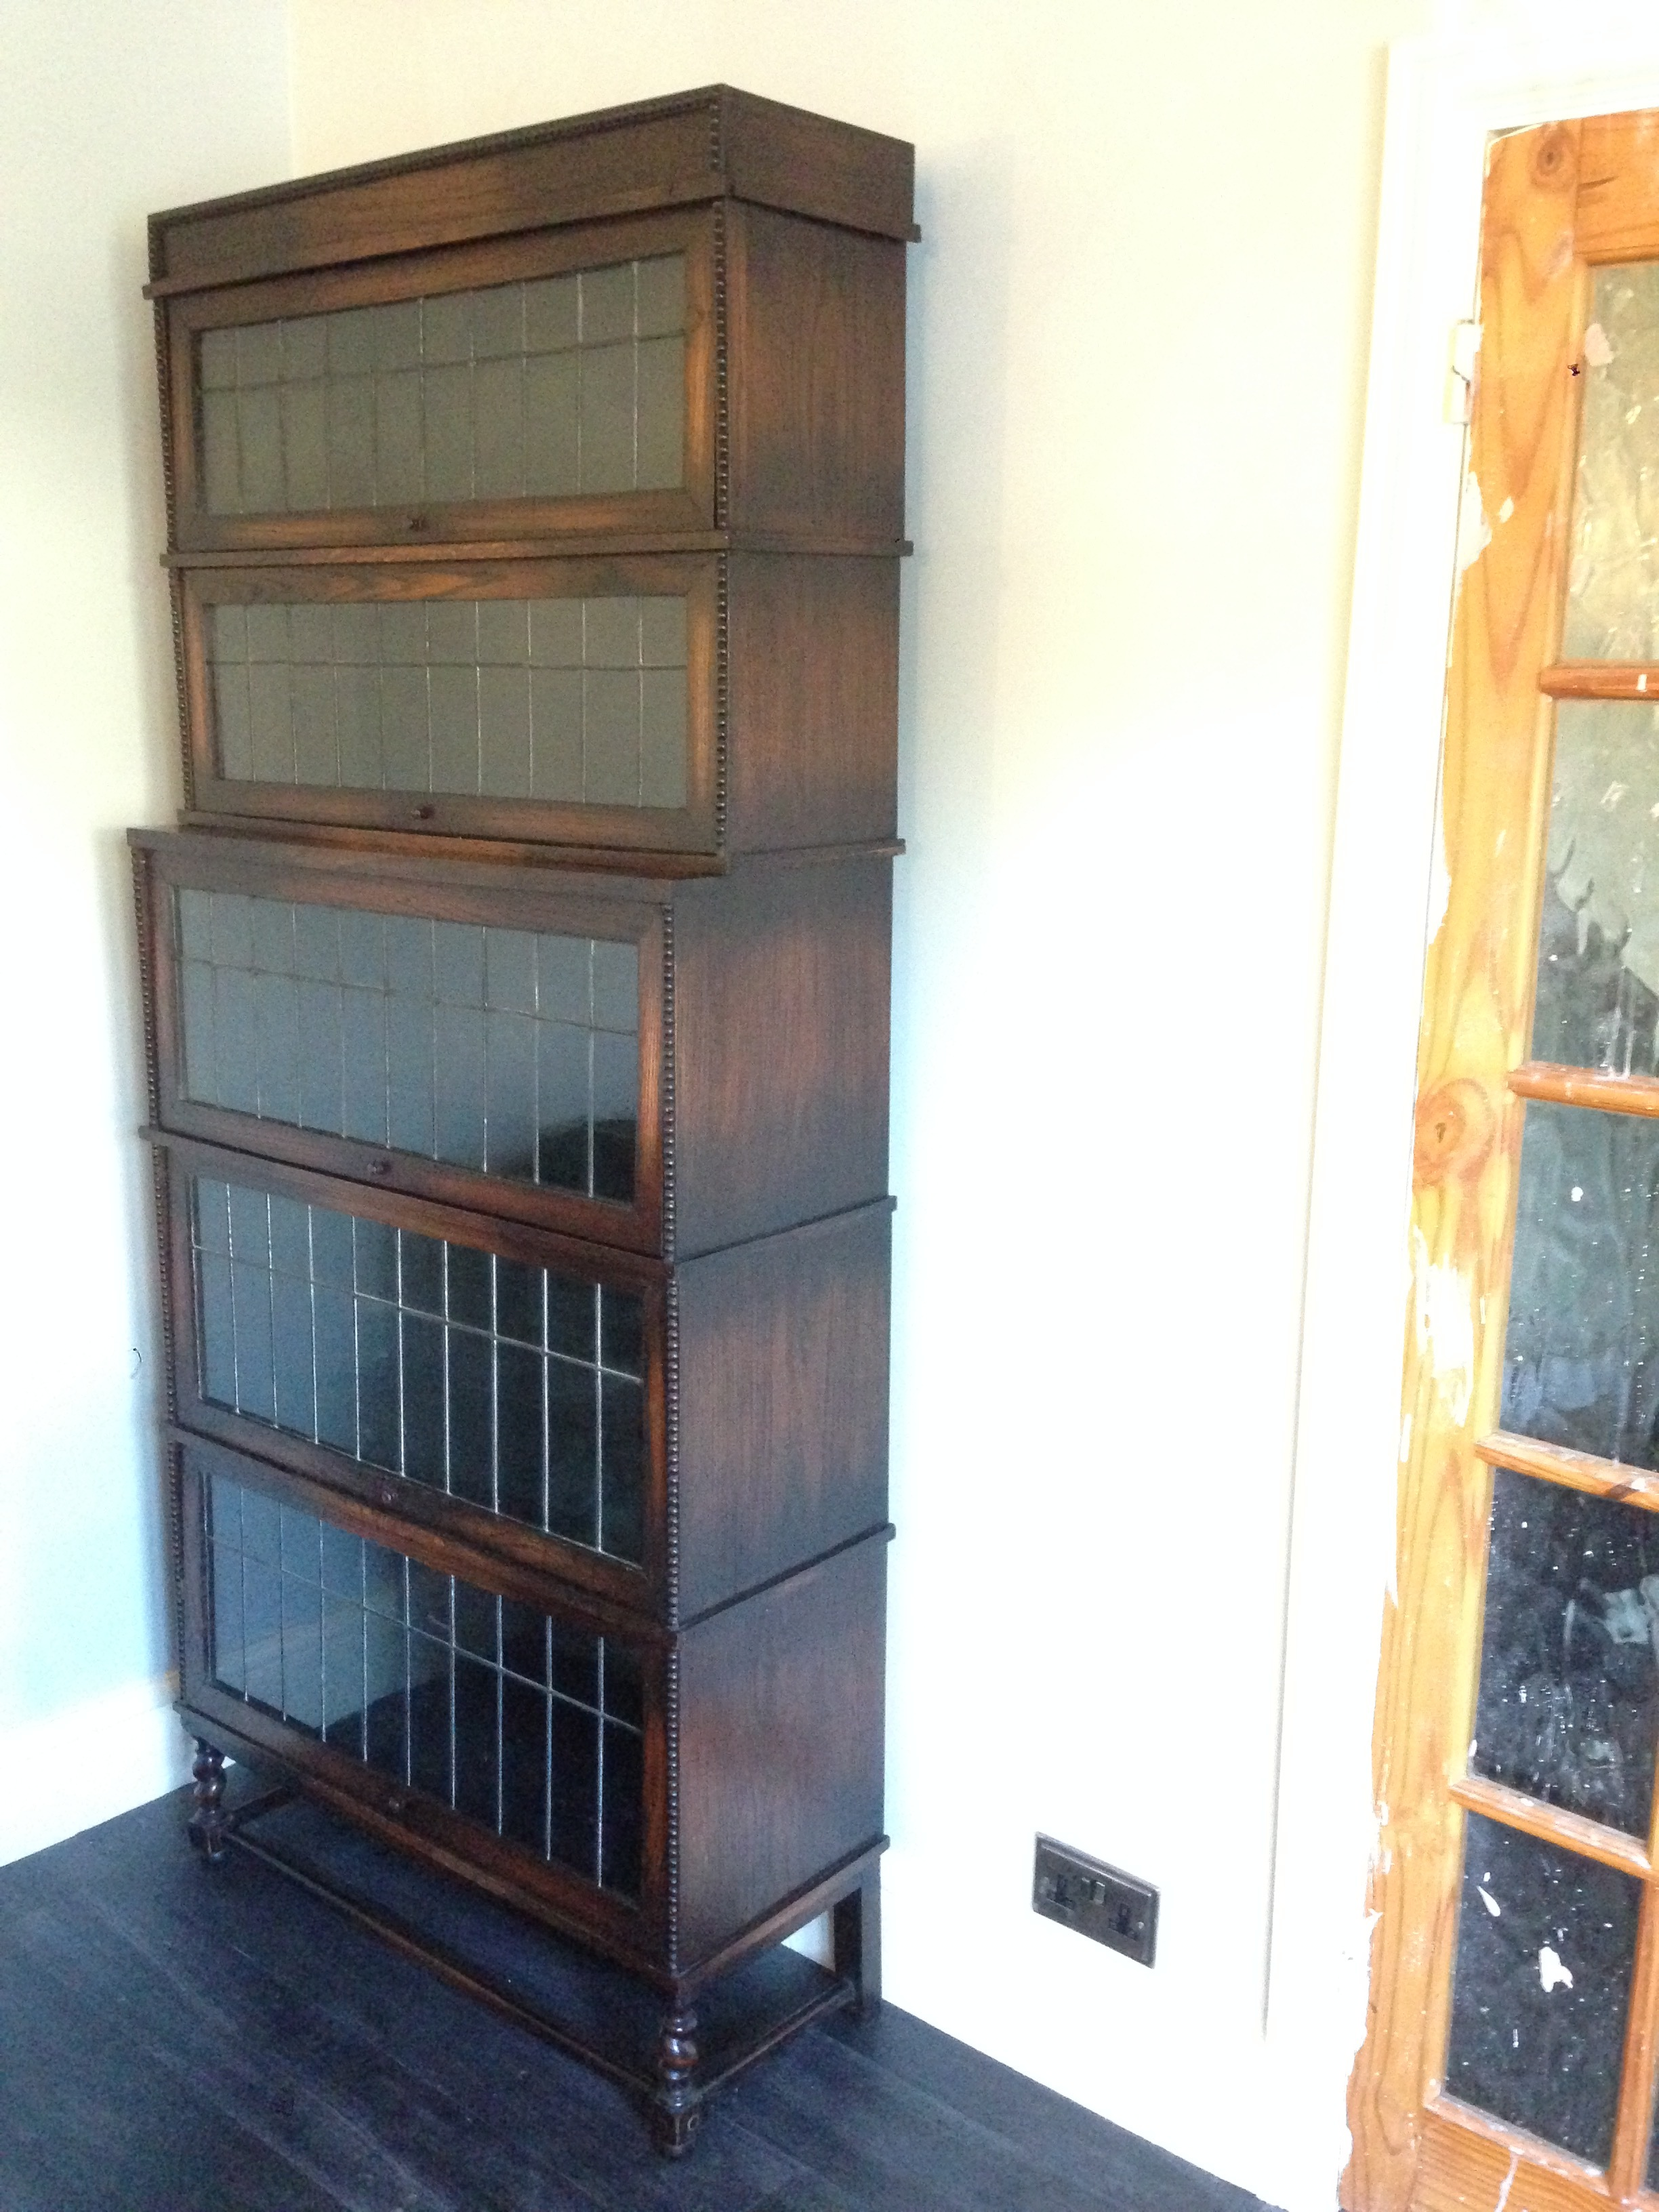 Oak Five-Tear Edwardian Bookcase fully restored from being a dysfunctional Bookcase that was in separate parts and had missing components.